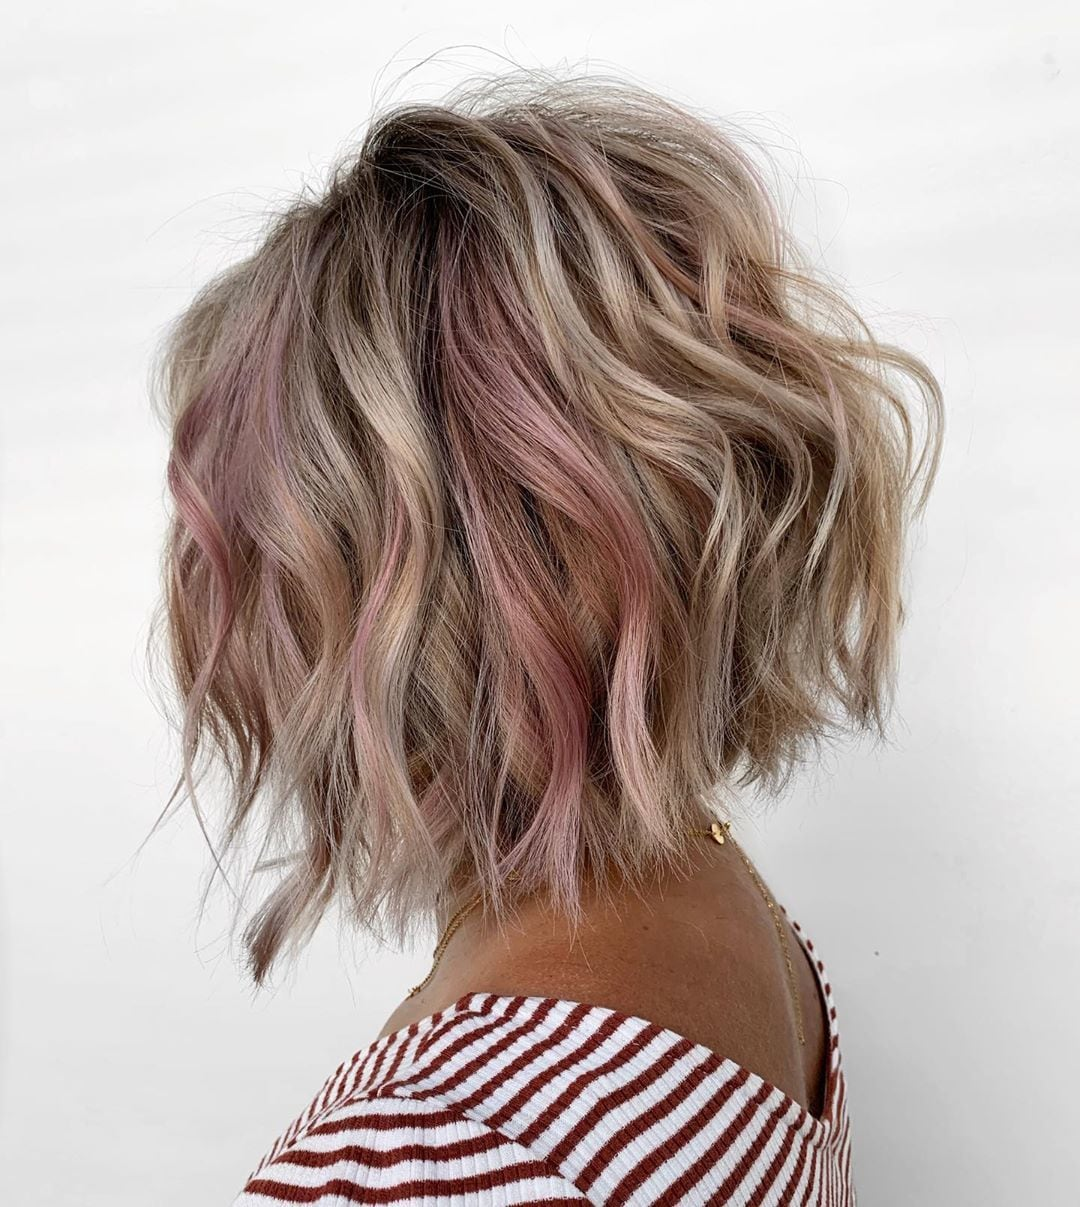 Blonde woman with a wavy stacked bob with pink highlights